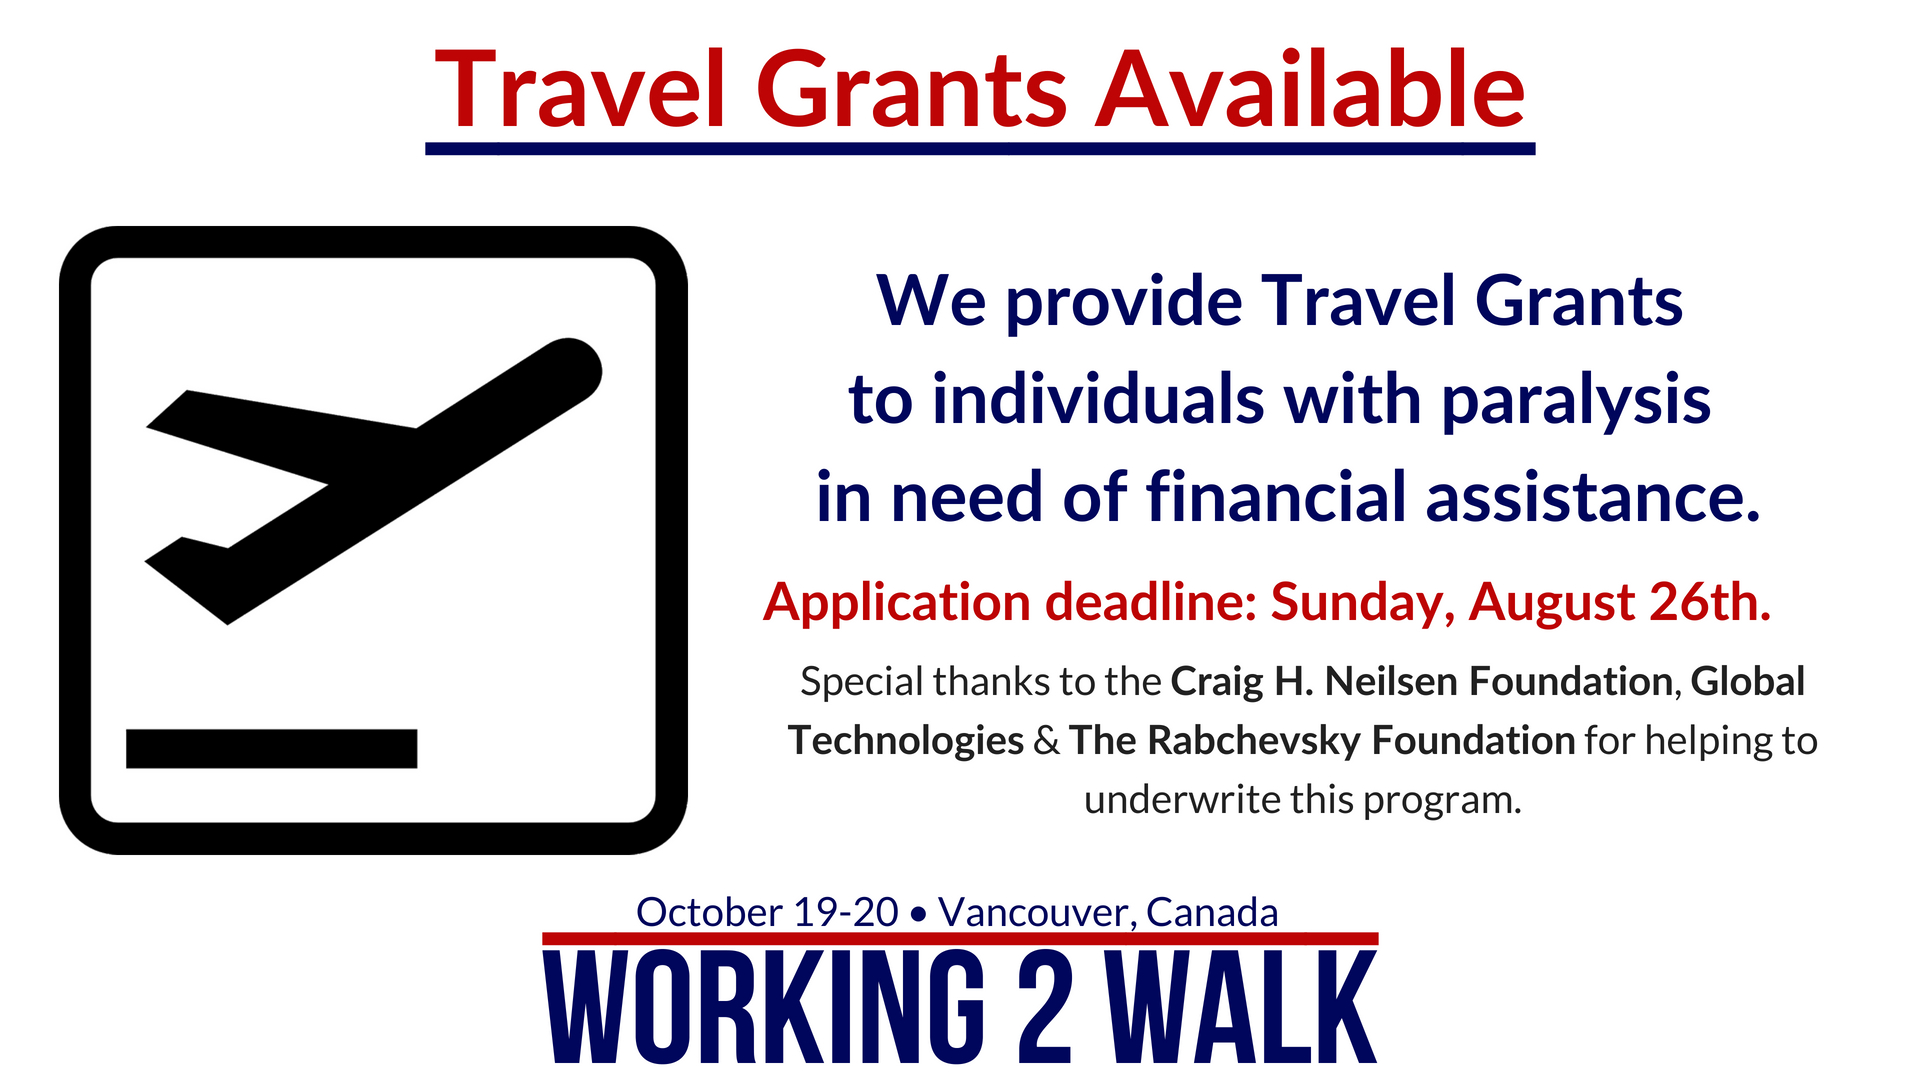 Travel Grants for Working 2 Walk